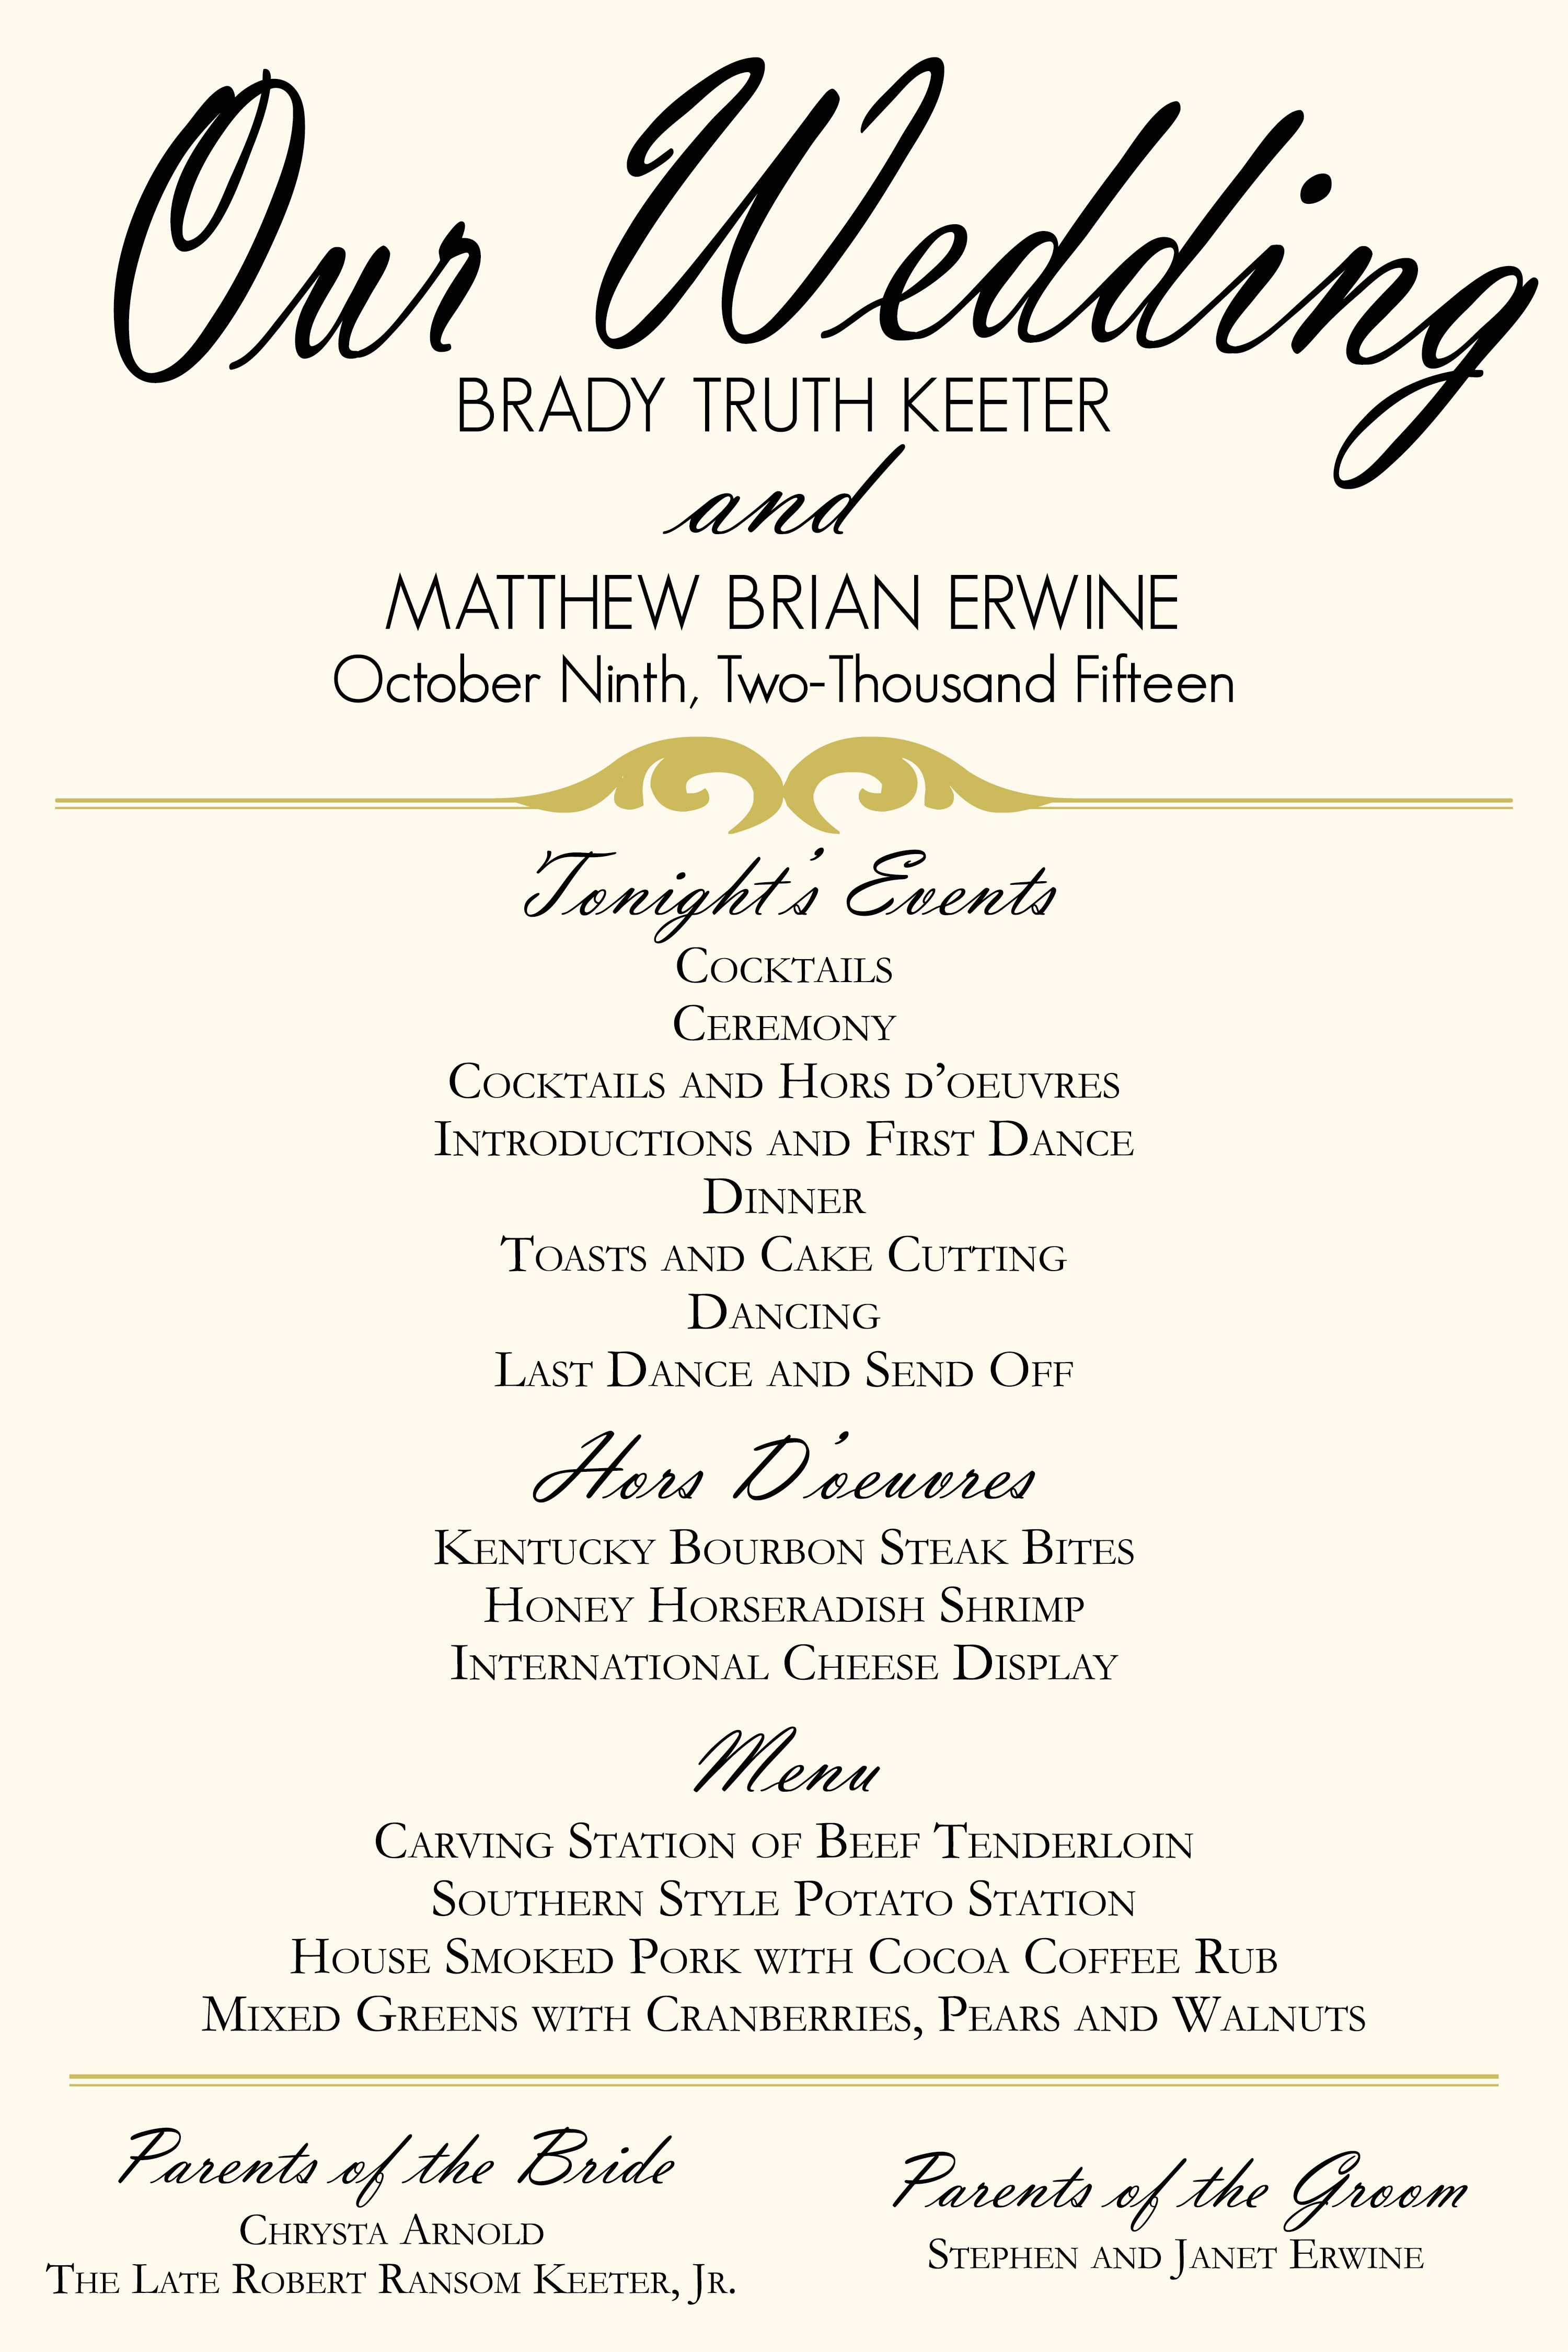 ivory and gold wedding program poster menu schedule of events